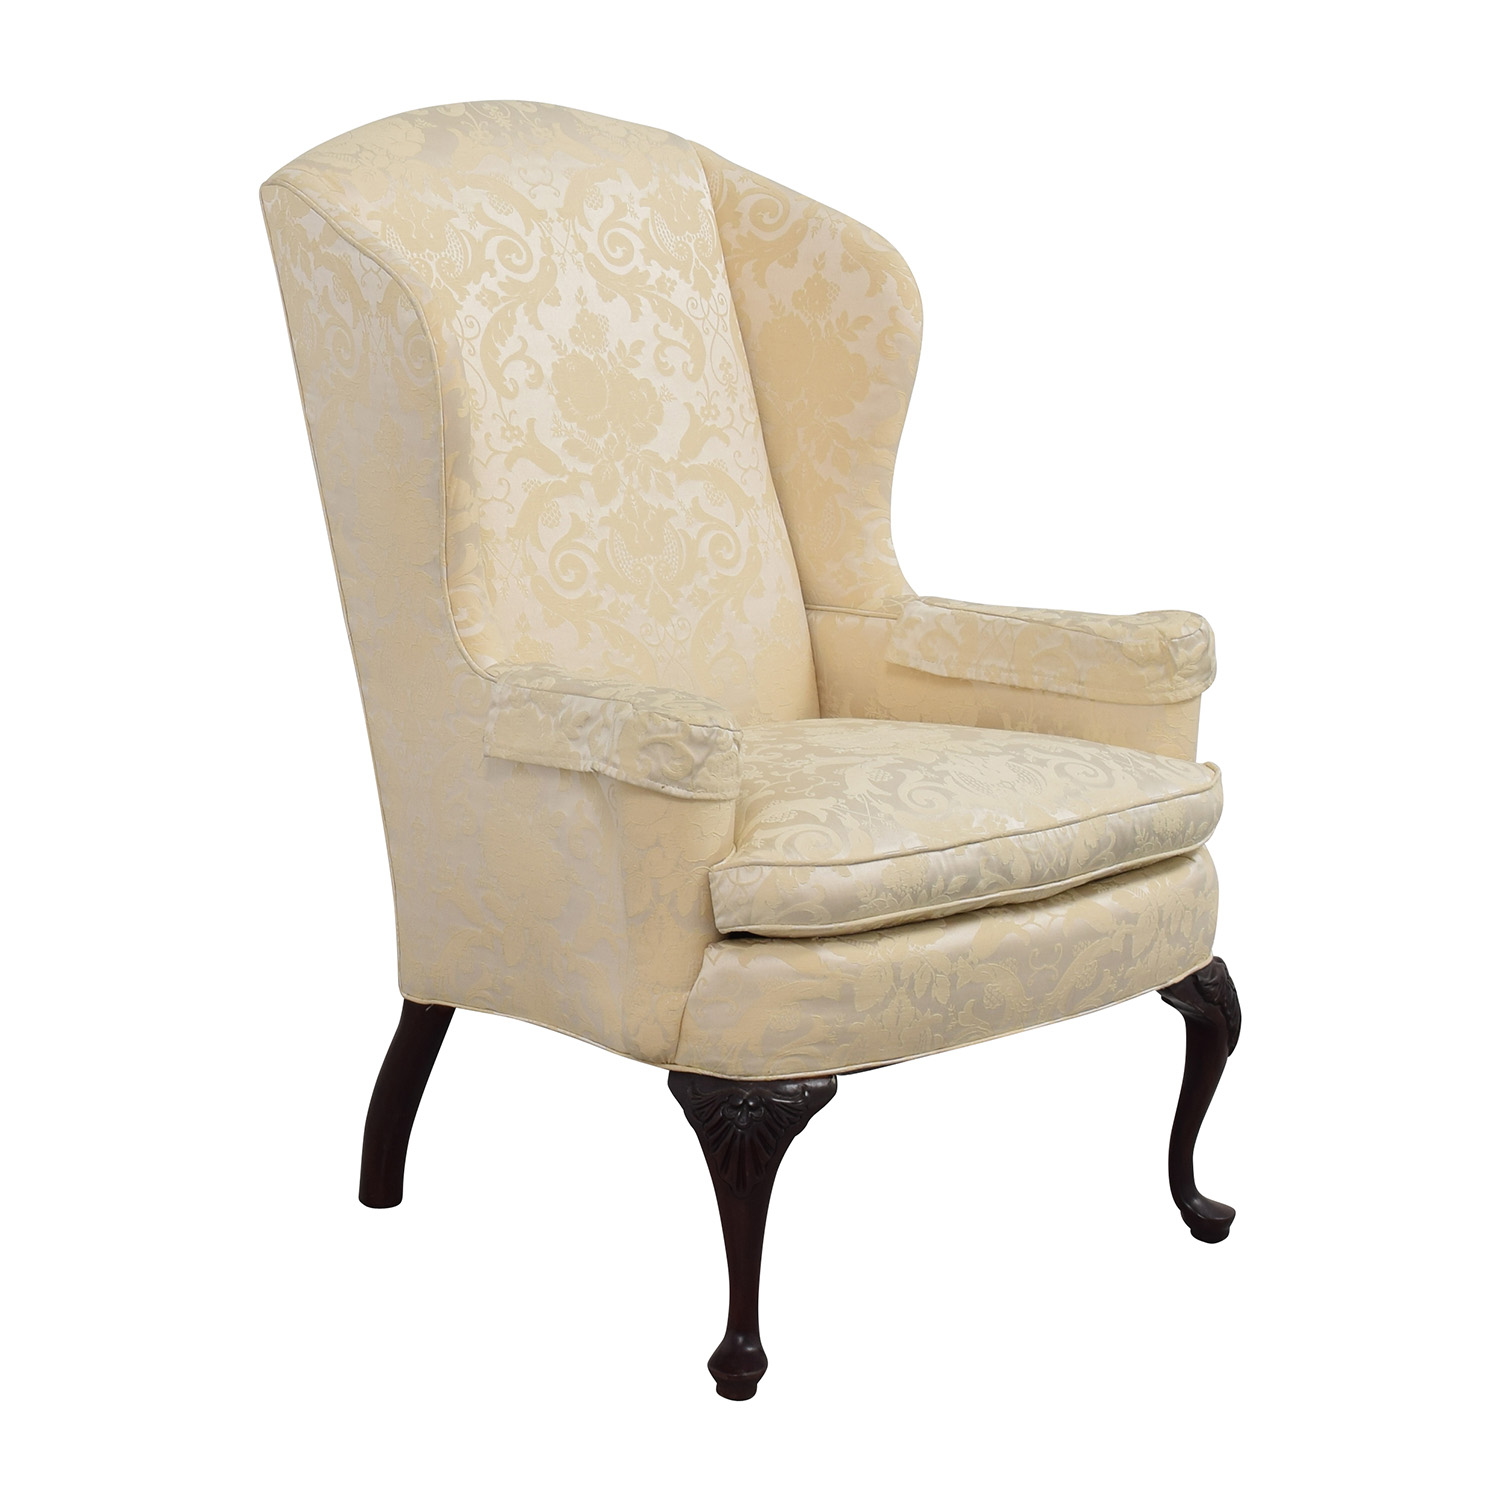 White Upholstered Chair 81 Off Croydon Furniture Croydon Furniture Queen Anne